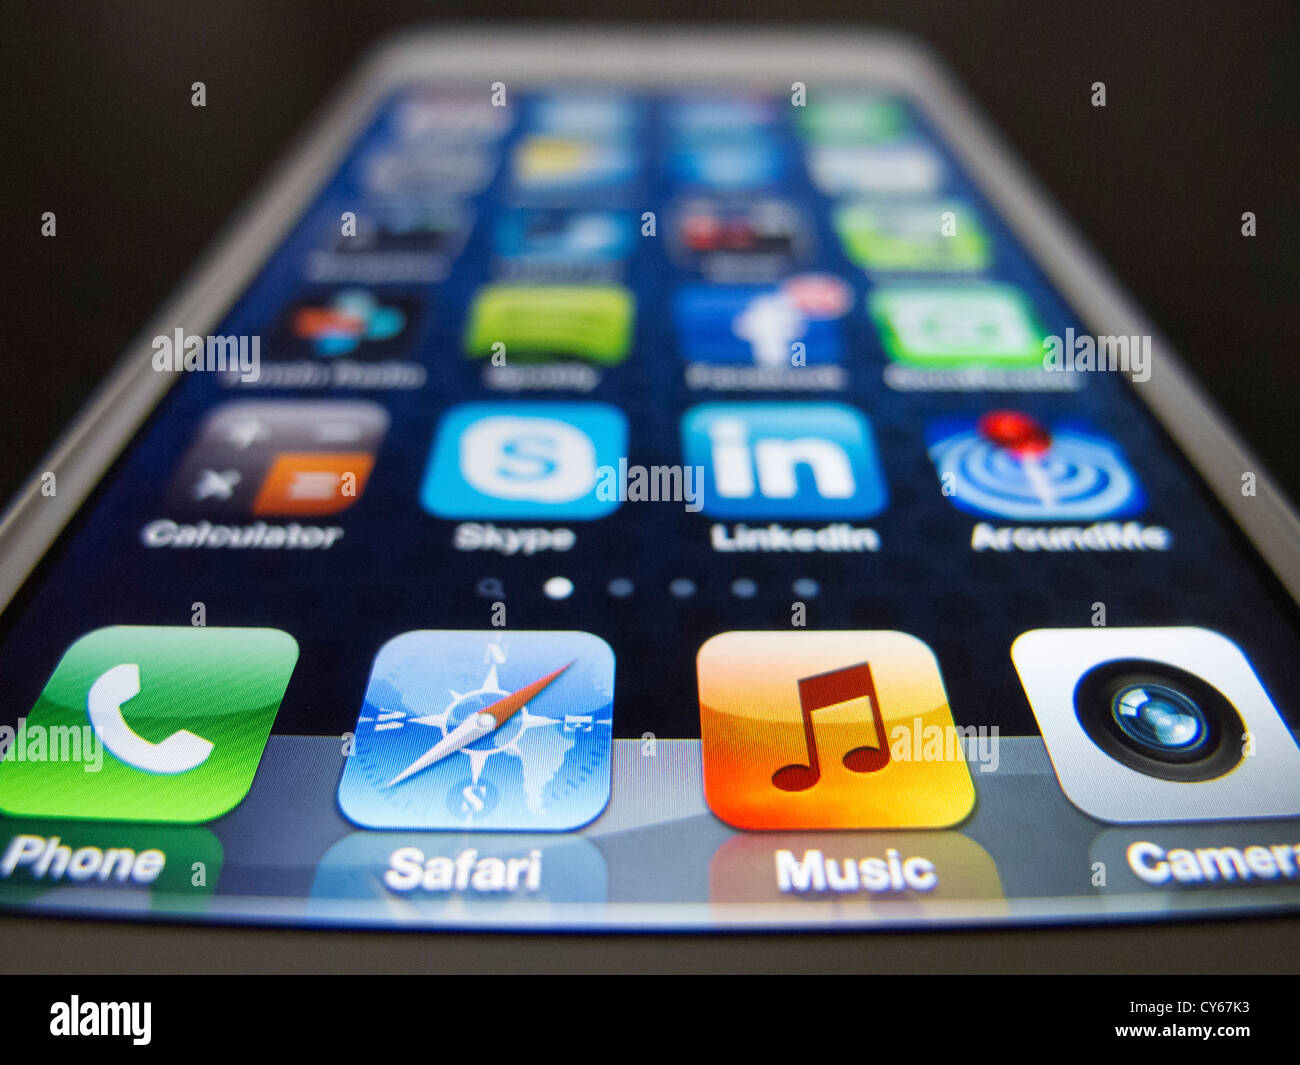 Close-up of new iPhone 5 smart phone showing screen with many apps - Stock Image